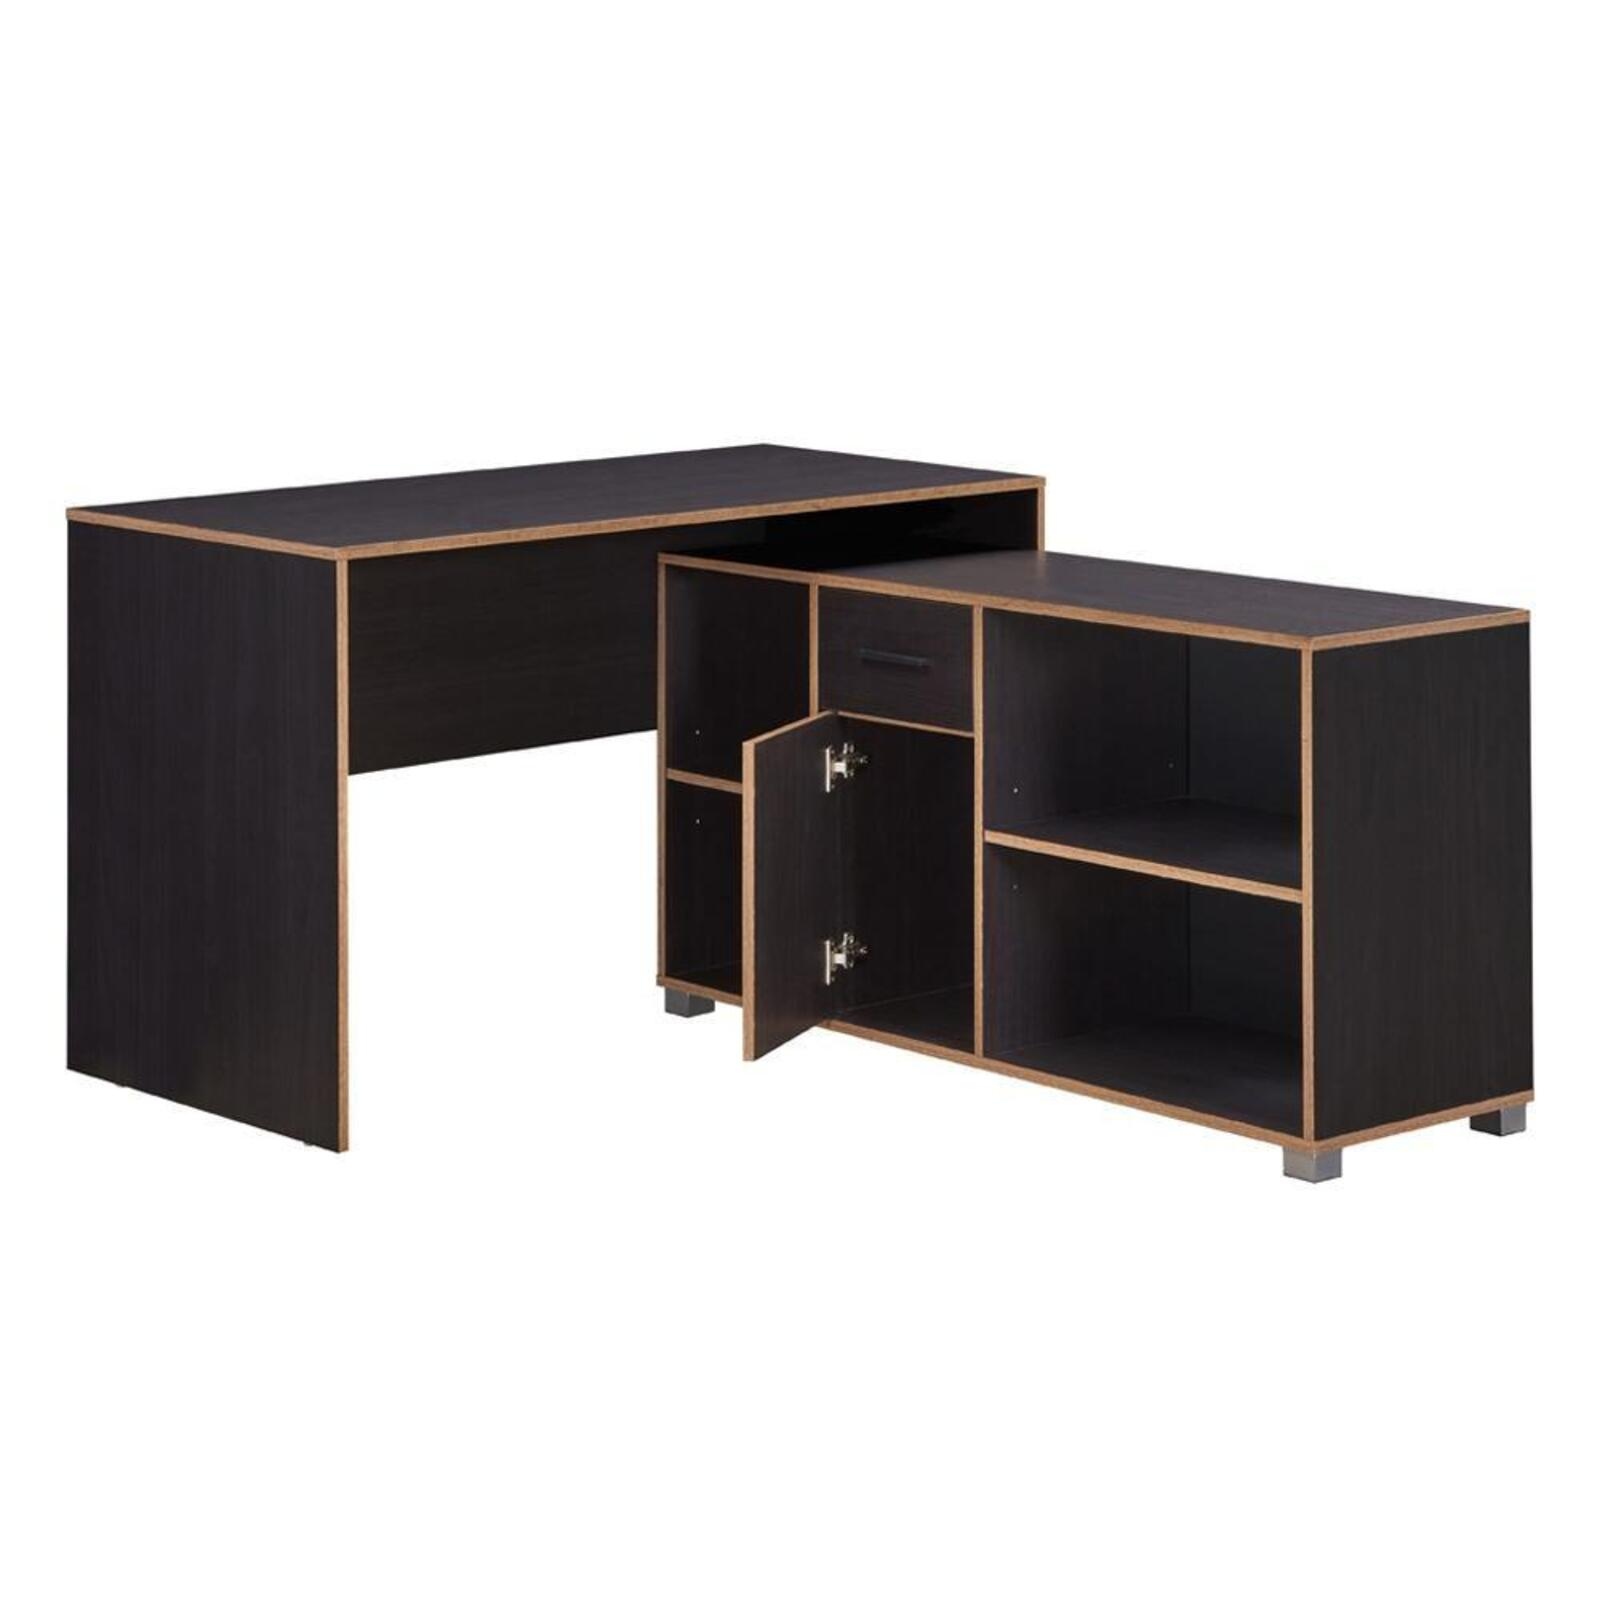 Deanes L-Shaped Executive Manager Office Corner Desk With Storage - Black